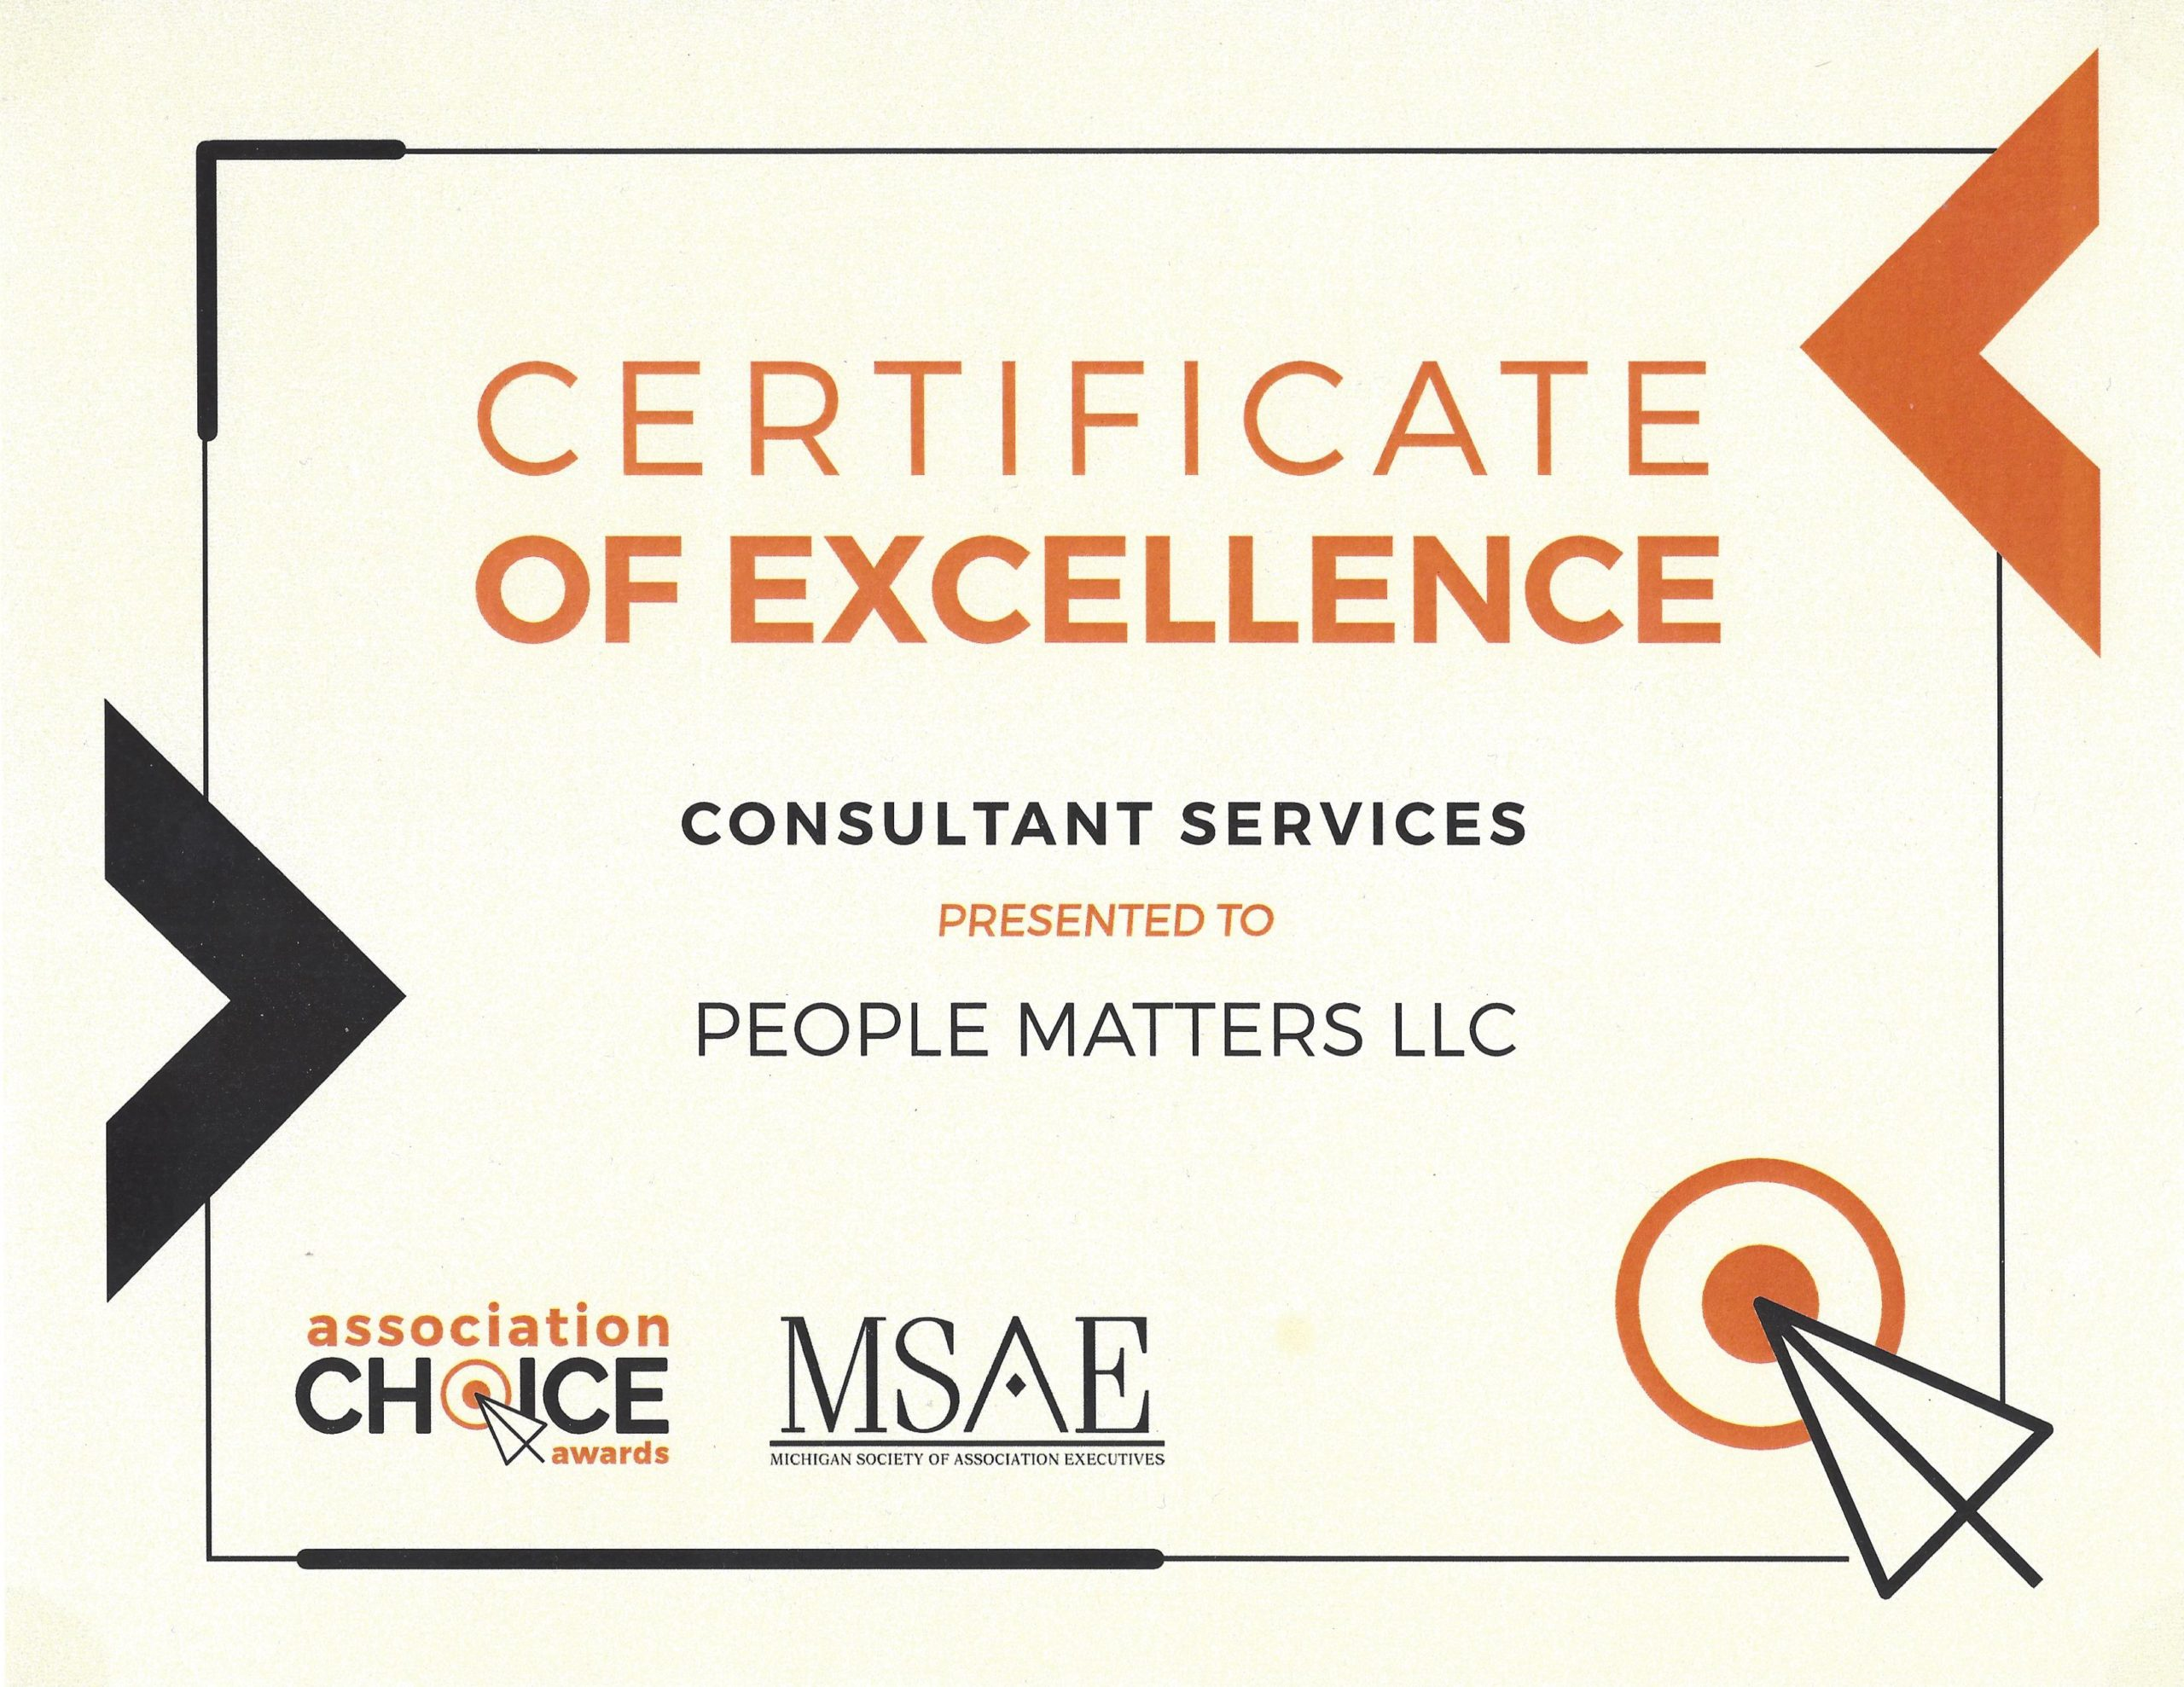 MSAE Association Choice Award